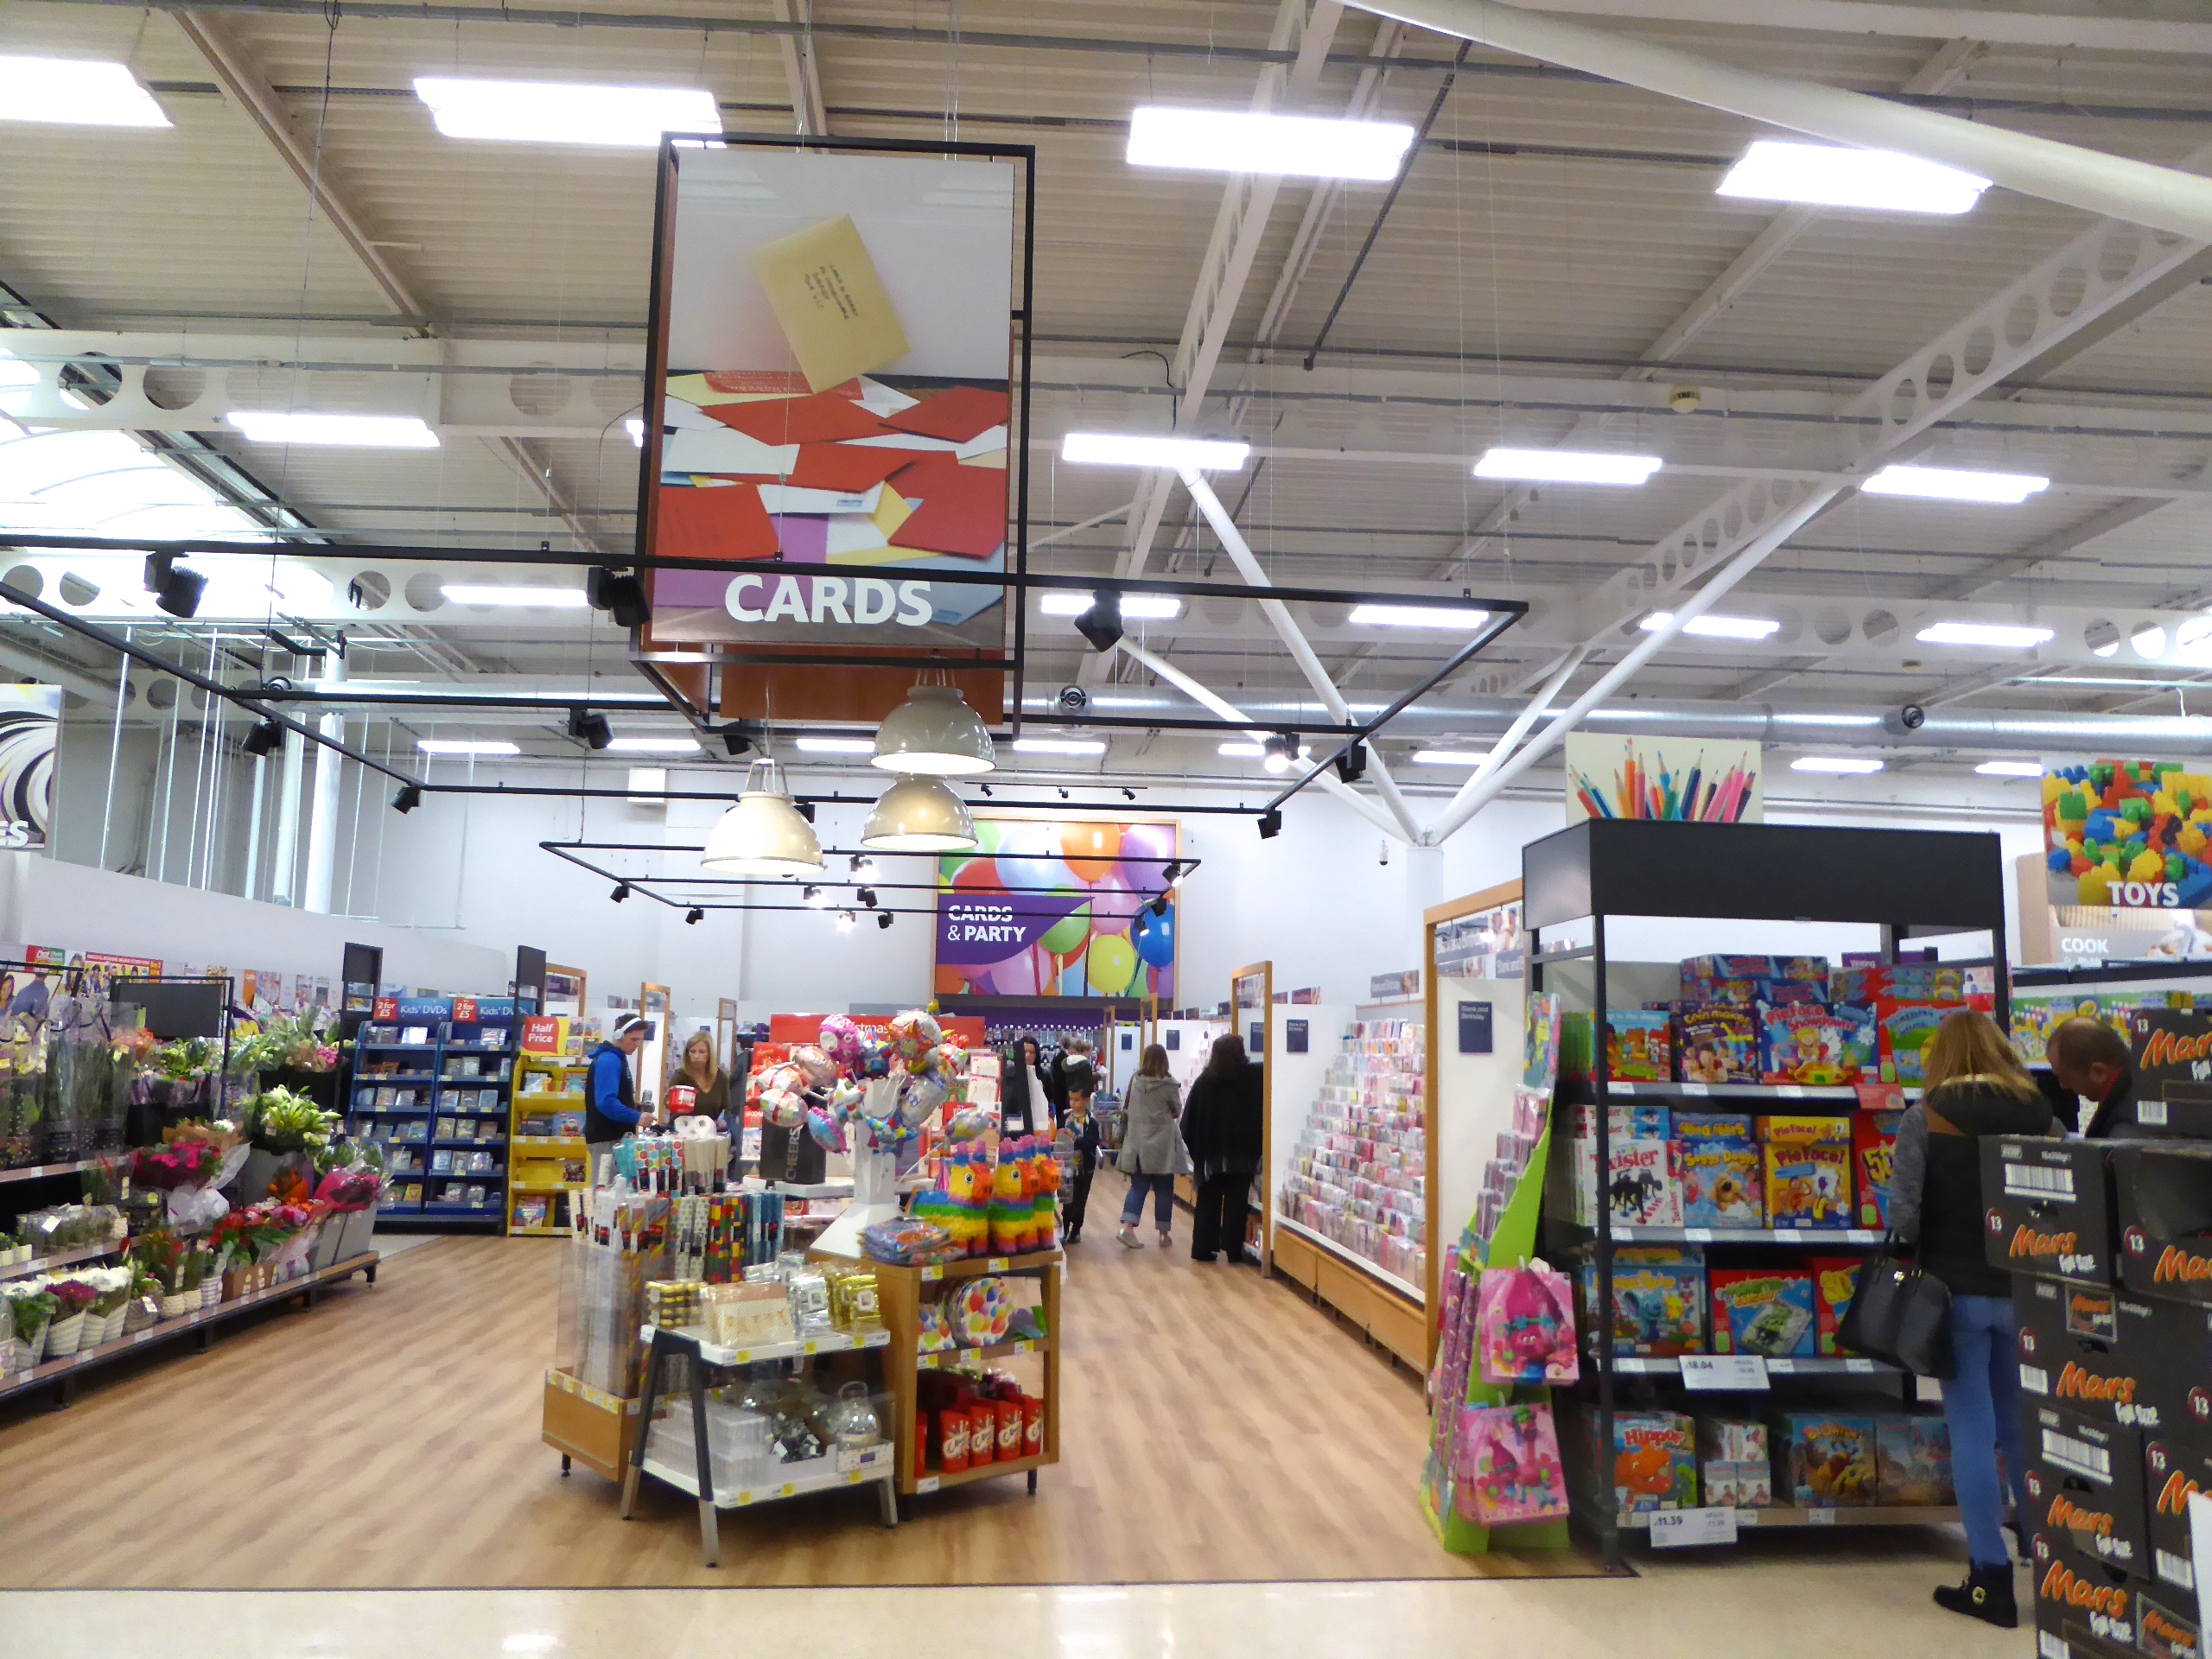 Above: The card displays are now being safely remerchandised in around 600 Tesco stores.